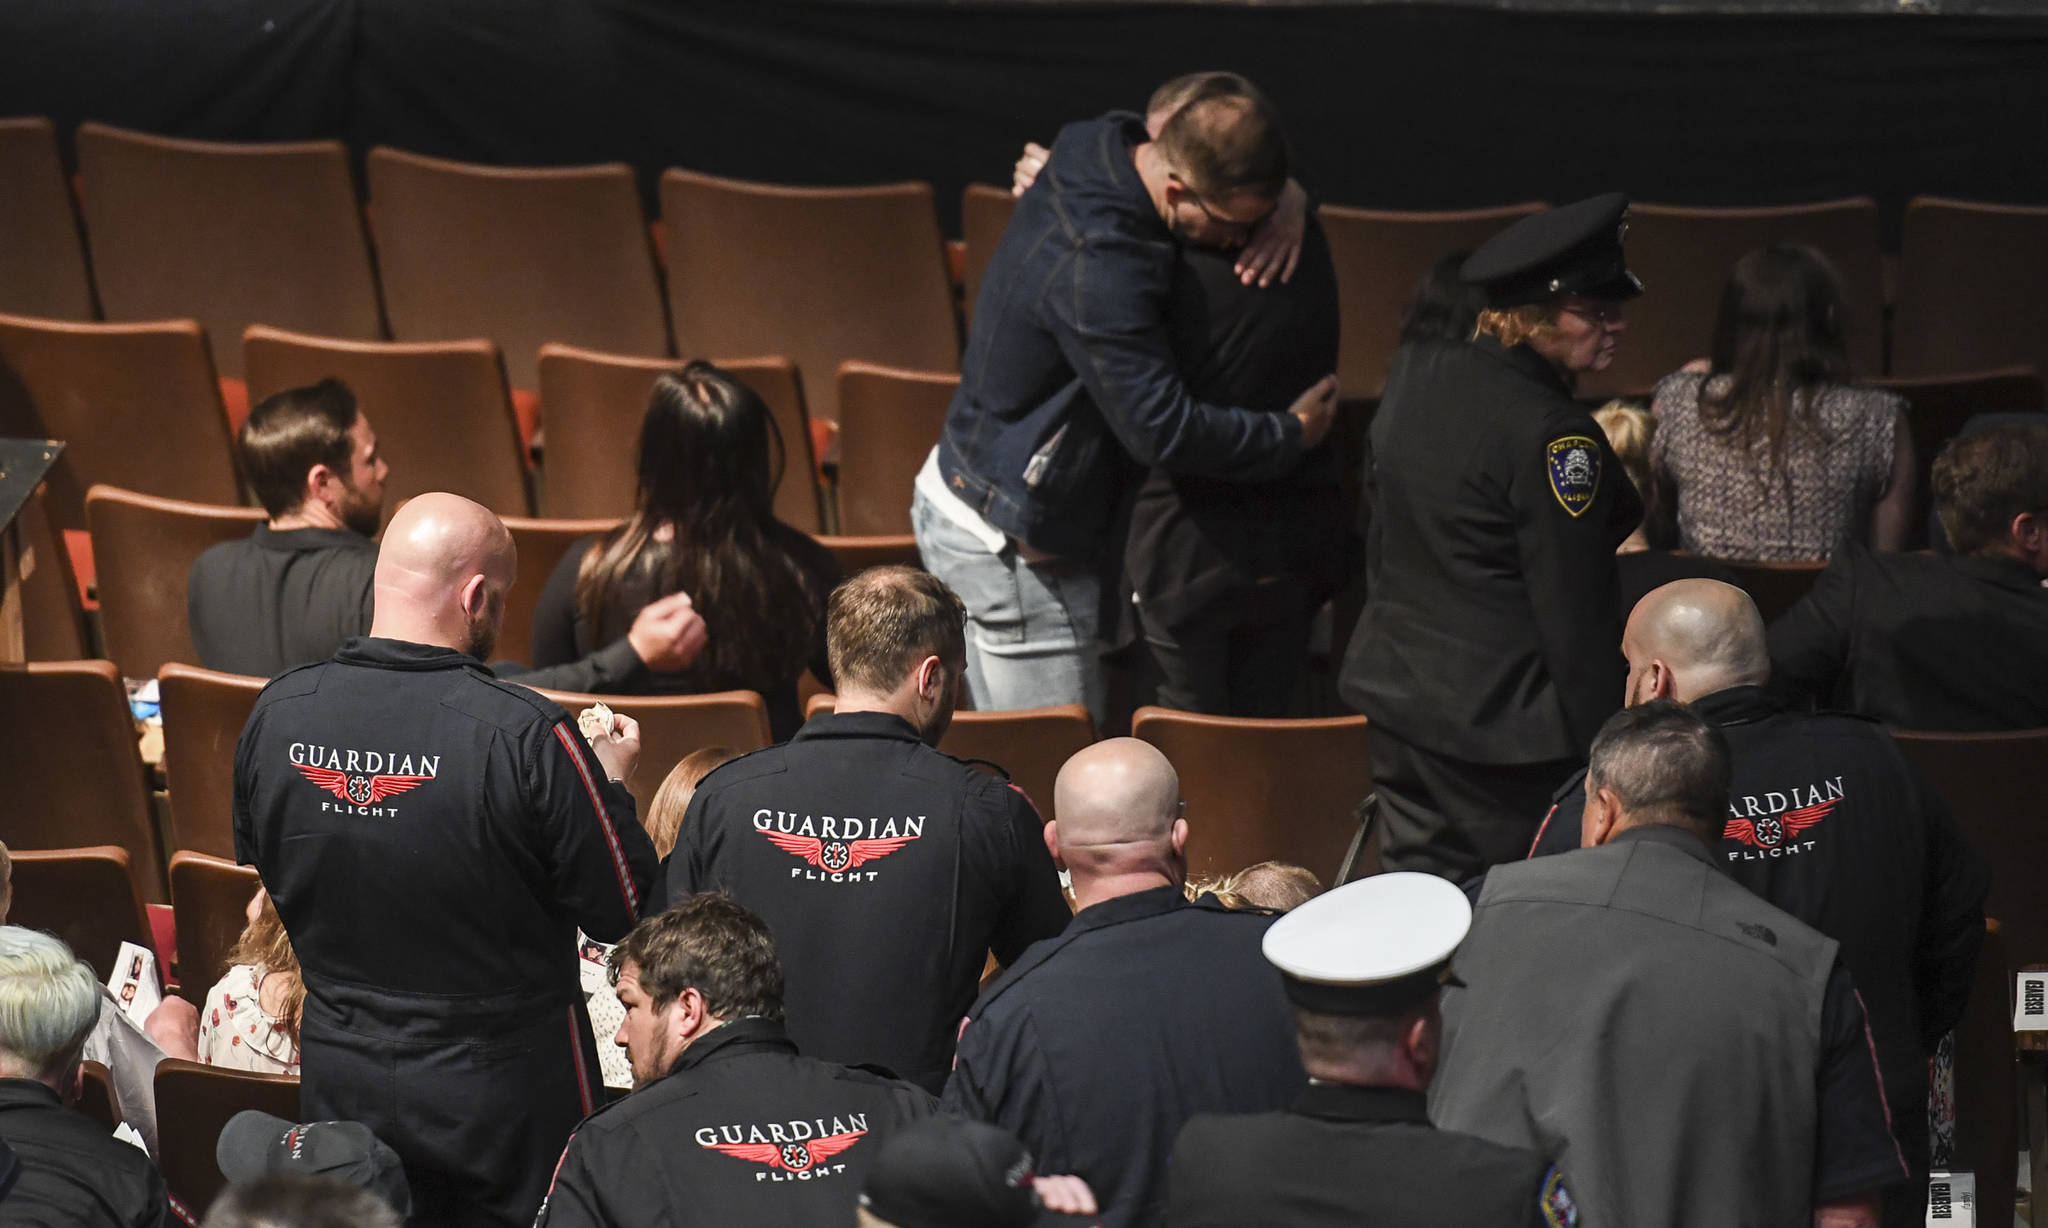 Family members embrace at the end of the a memorial service for the Guardian Flight crew held at Juneau-Douglas High School: Yadaa.at Kalé on Friday, June 7, 2019. (Michael Penn | Juneau Empire)